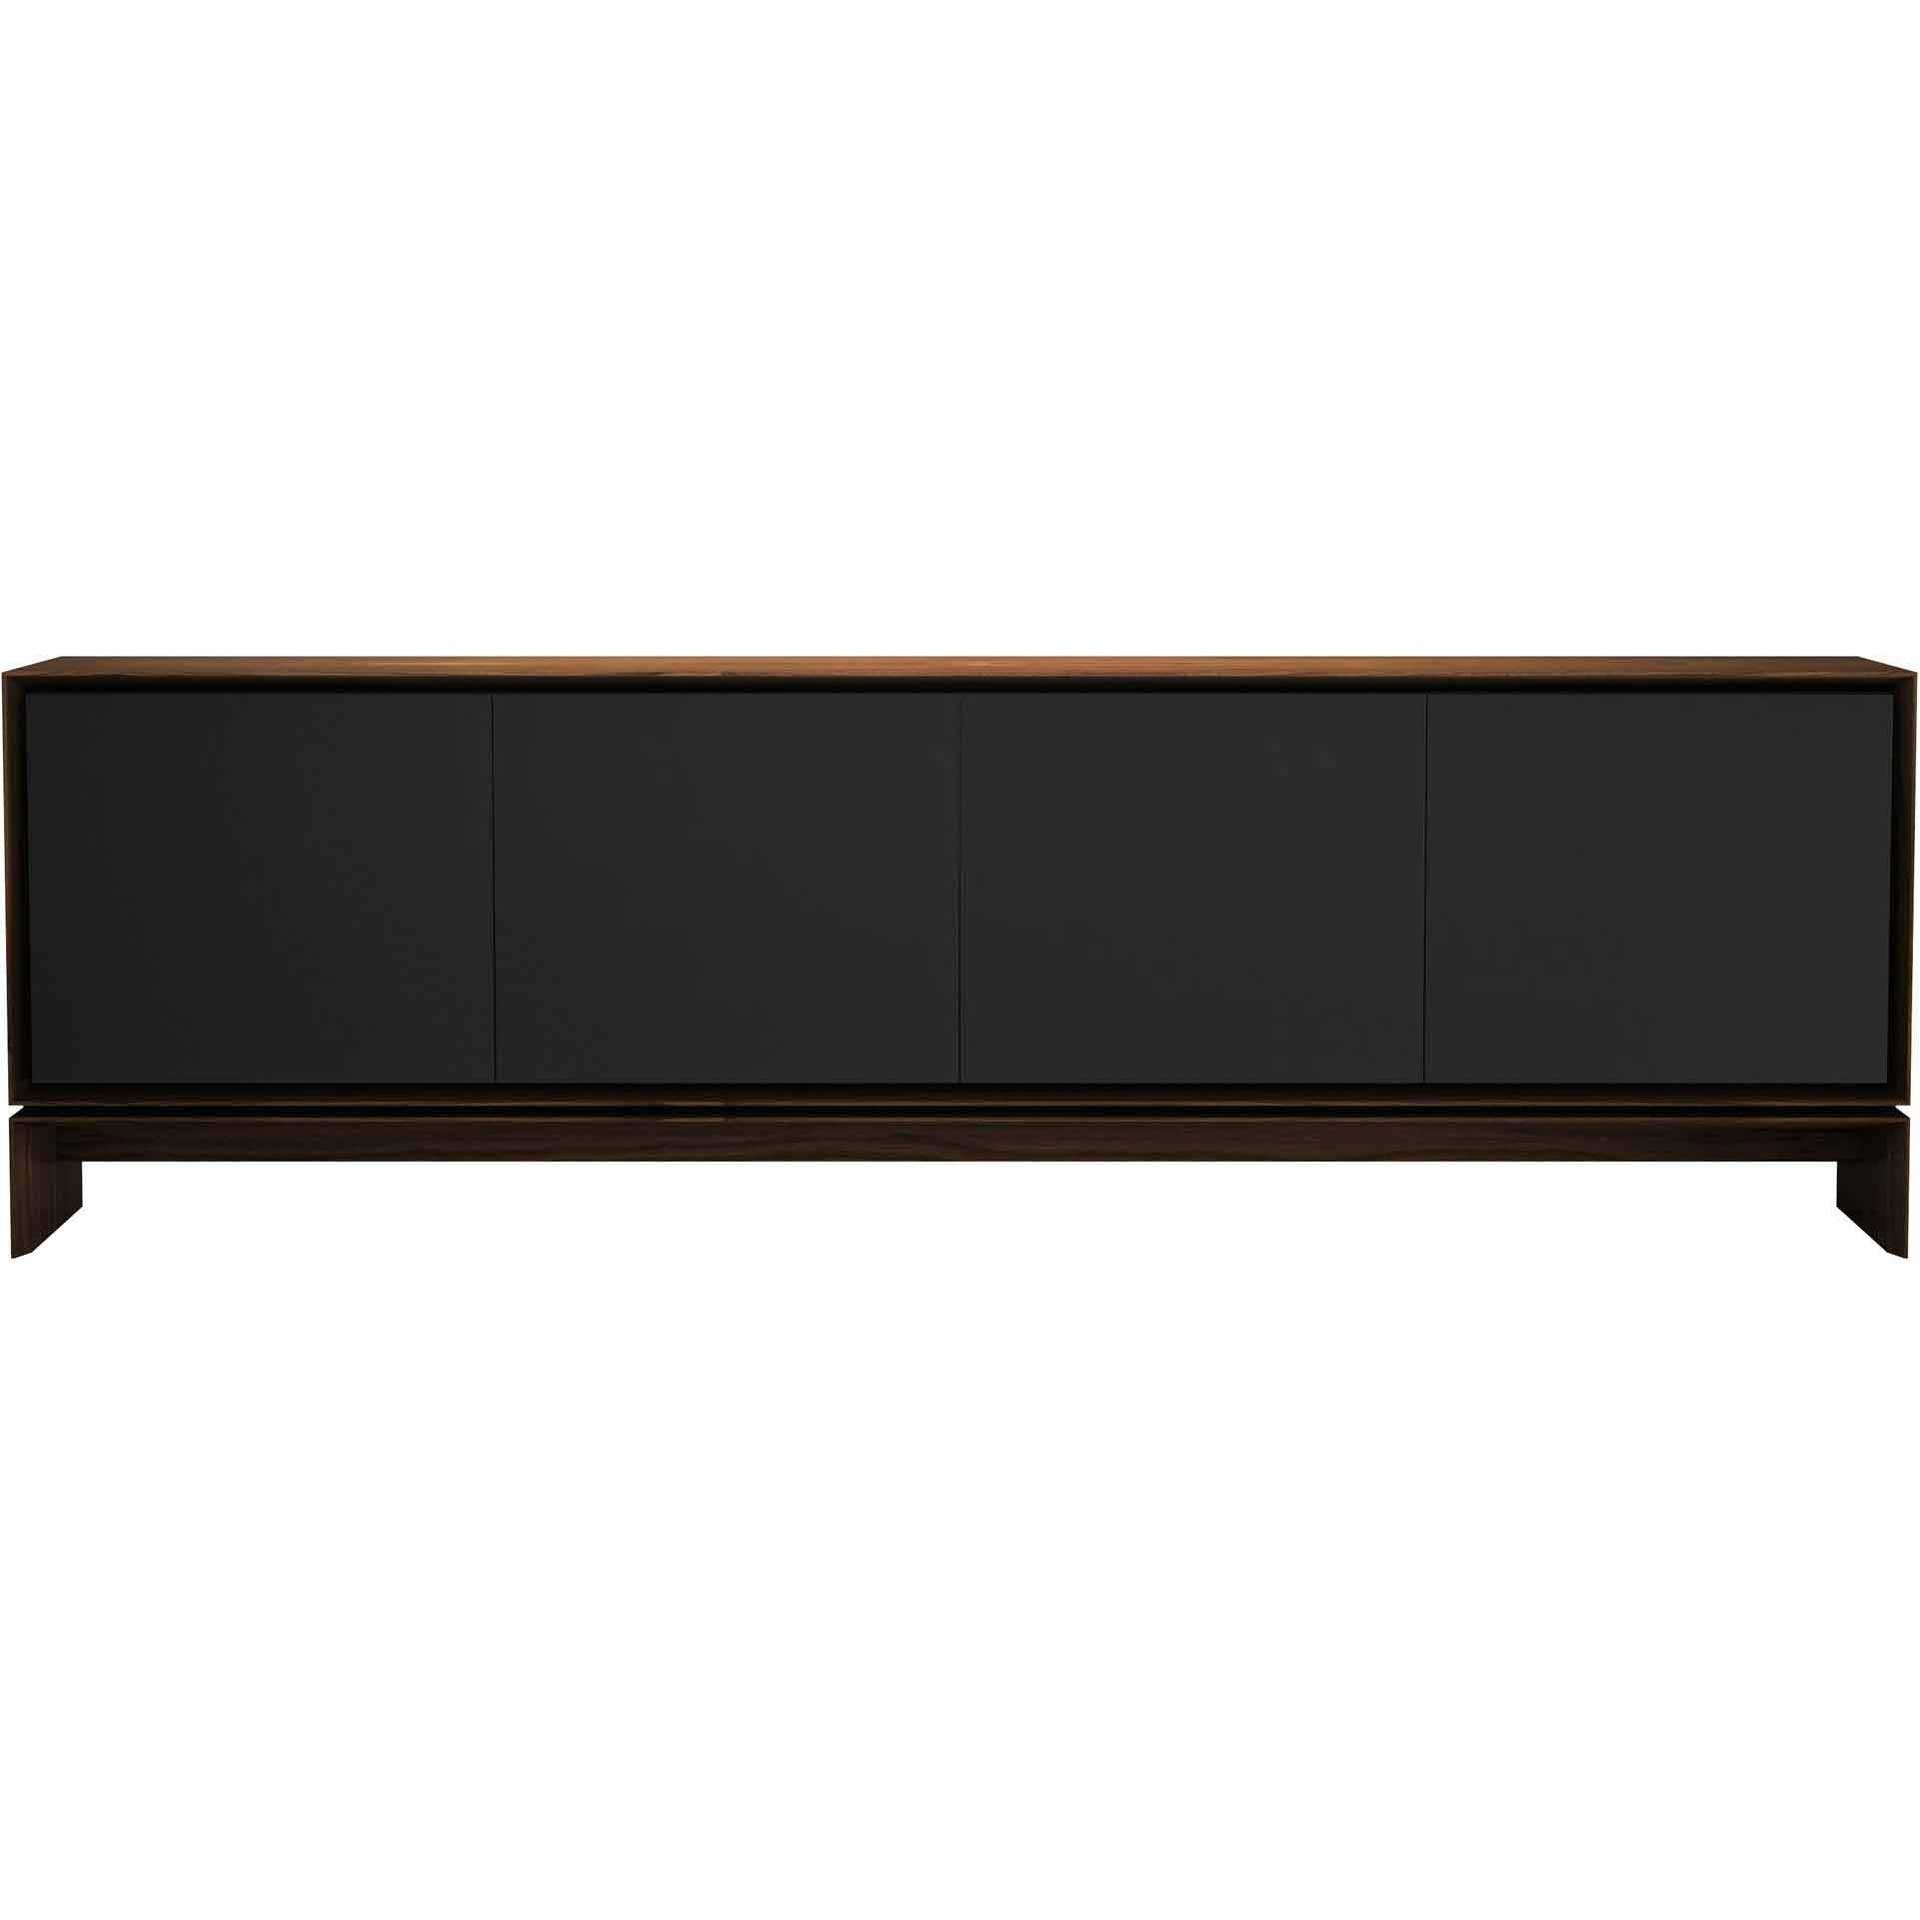 Barnes Sideboard Walnut/Graphite